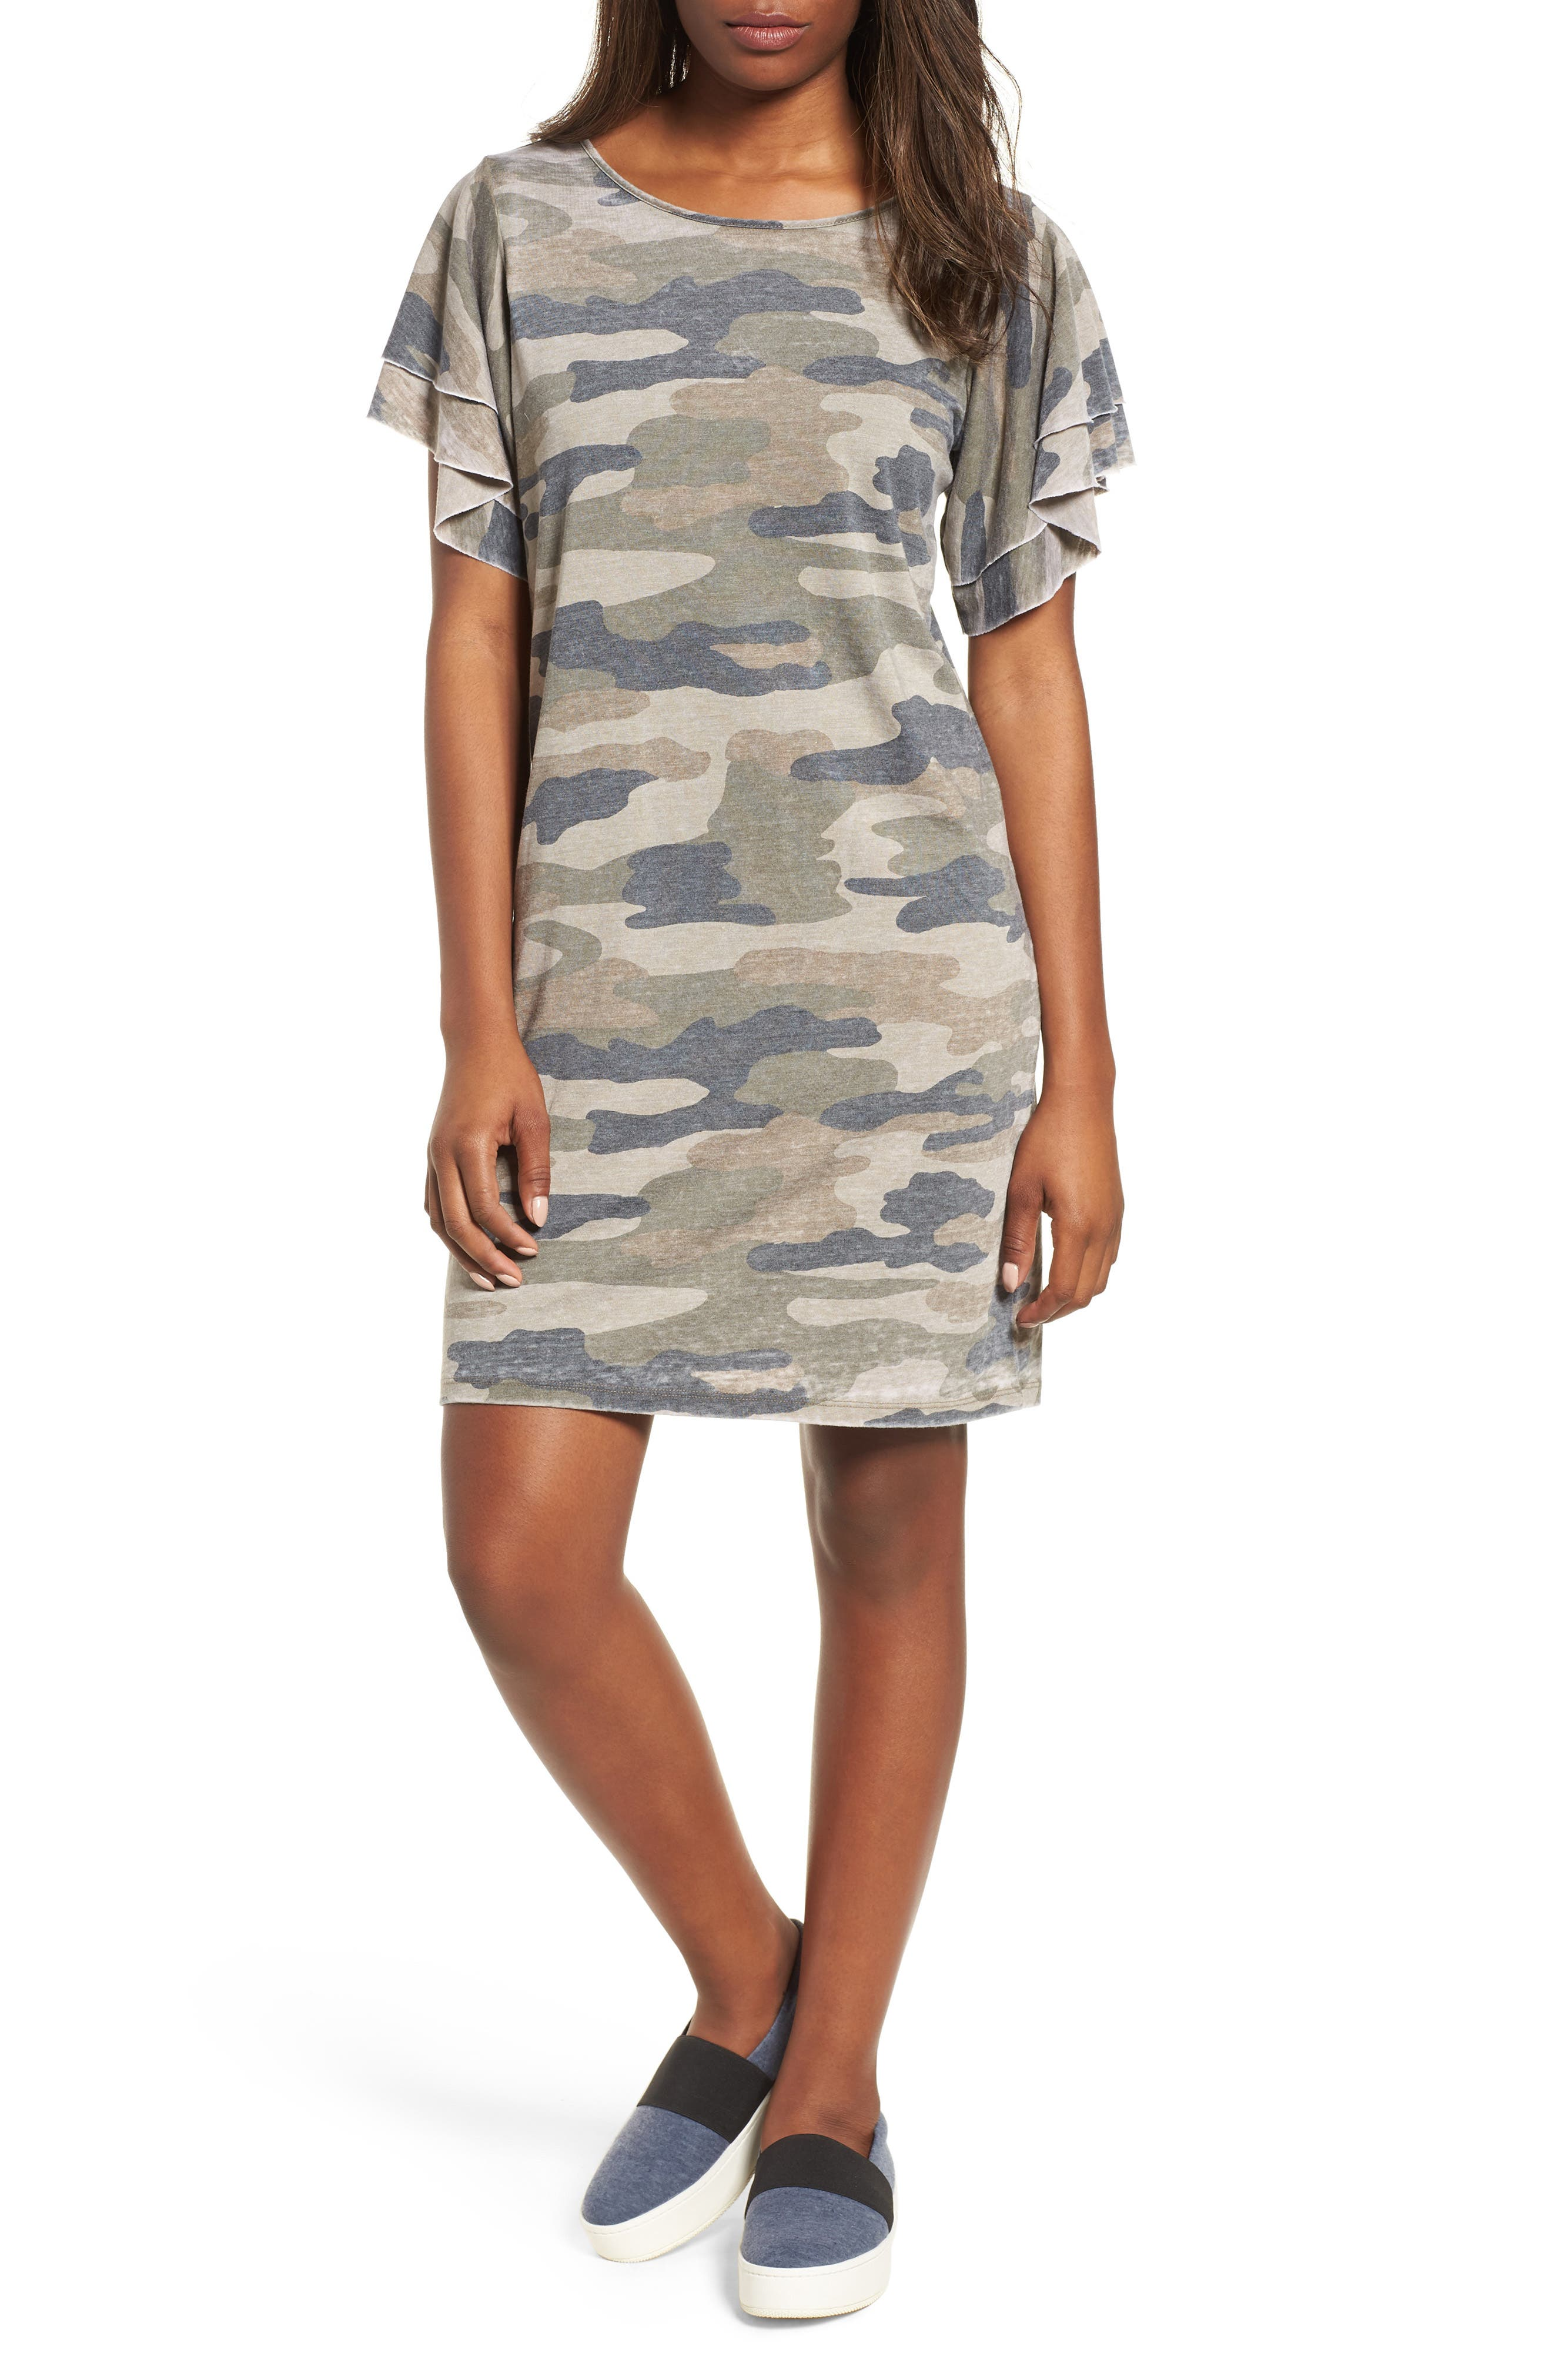 Camo Print Dress,                             Main thumbnail 1, color,                             310